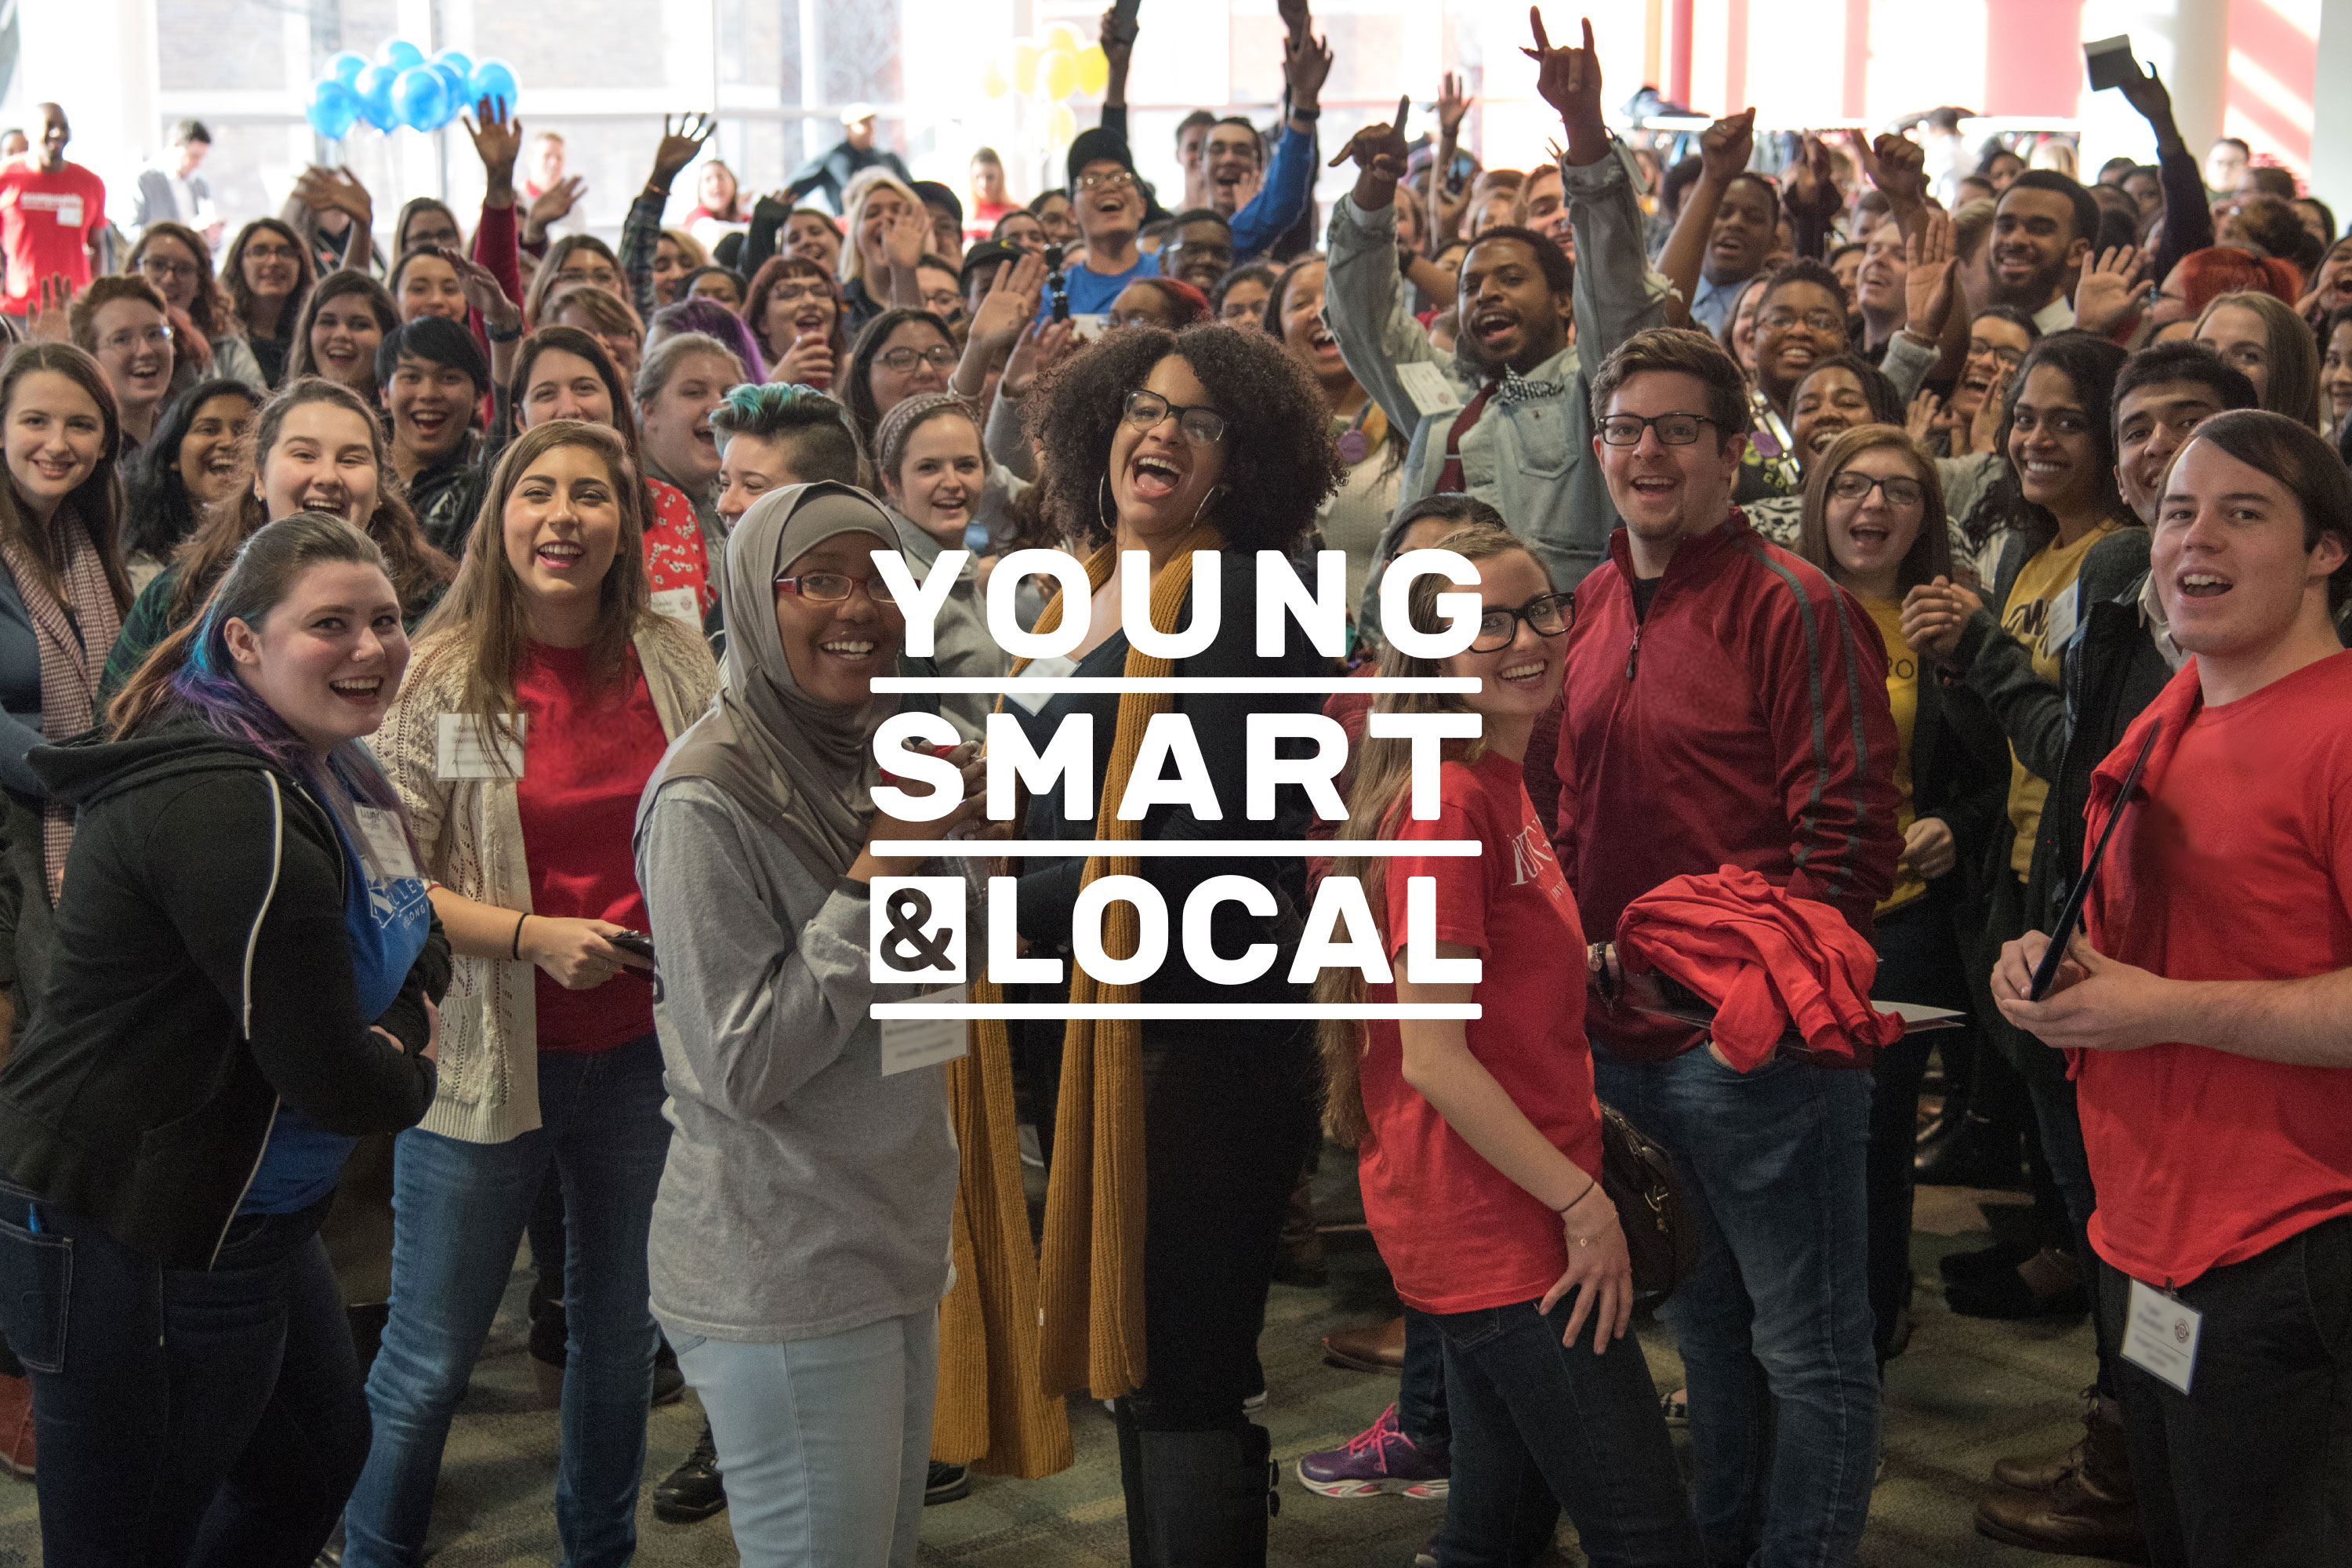 young, smart and local